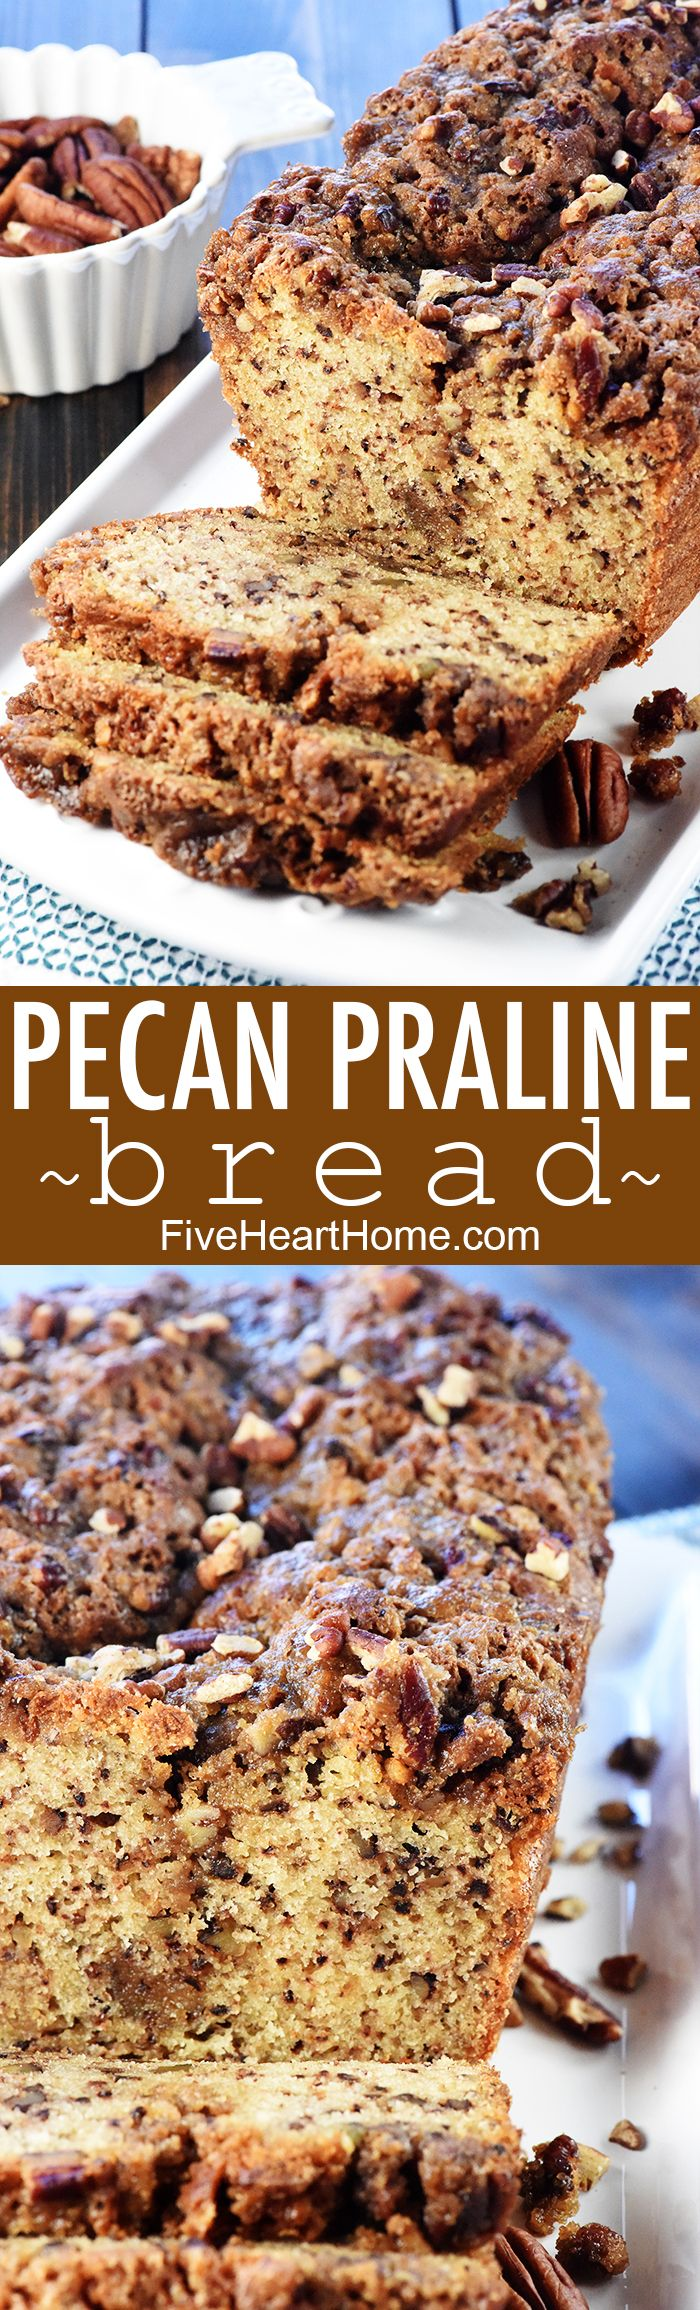 Pecan Praline Bread ~ a delicious quick bread recipe with a tender crumb and a ribbon of brown sugar pecans for added sweetness and crunch! | FiveHeartHome.com via @fivehearthome